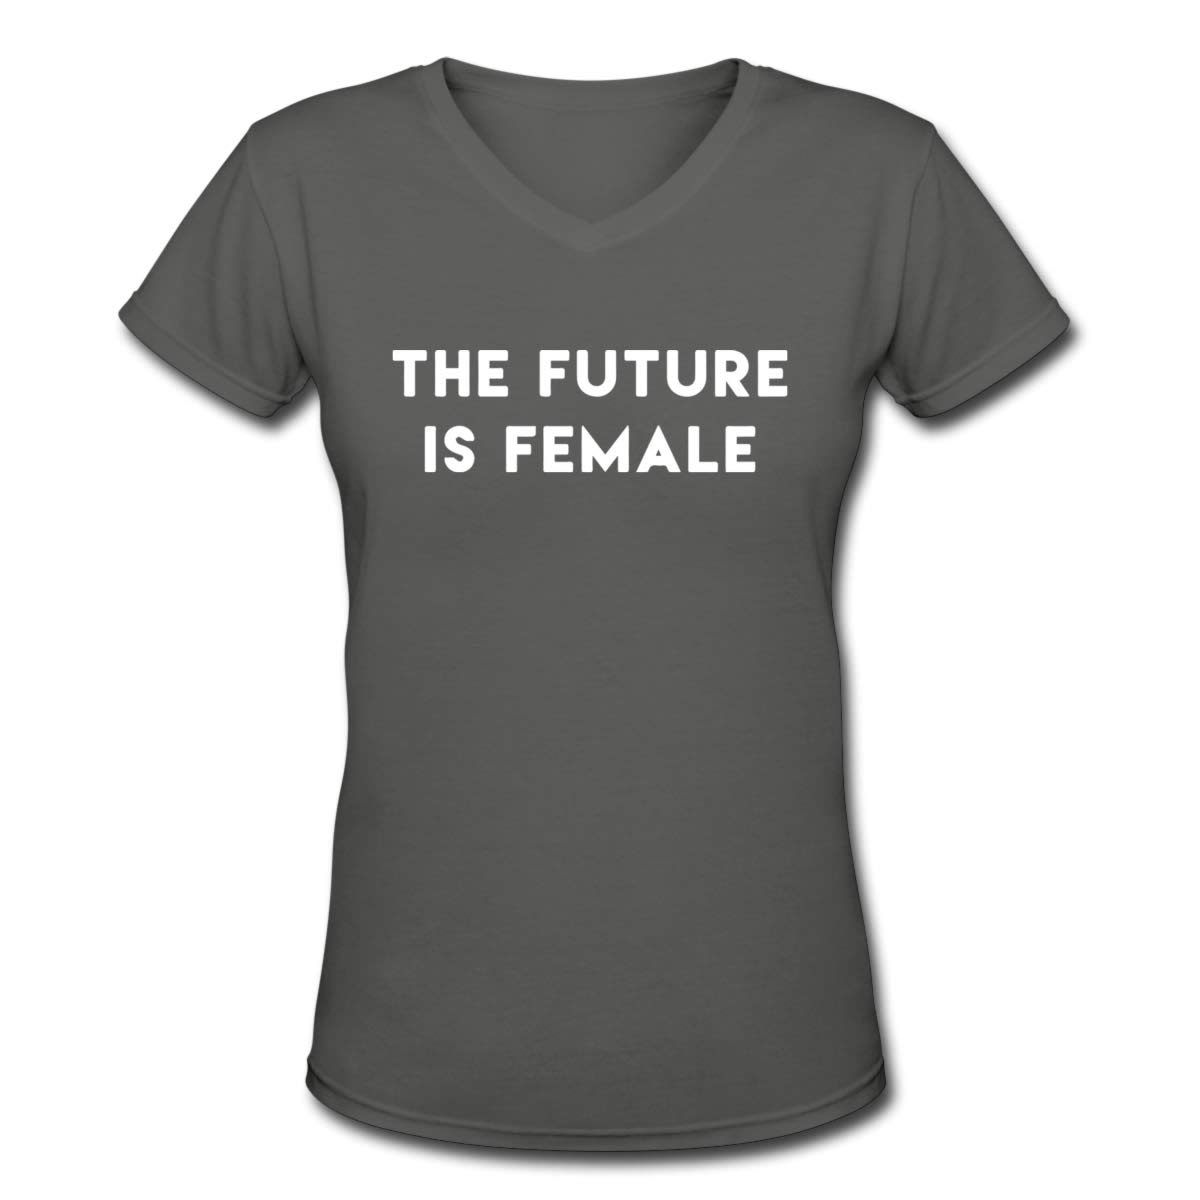 Women's T Shirt The Future is Female Tee Shirts Cotton T-Shirt Short-Sleeve V Neck Crop Top for Youth Girls Deep Heather M by BKashy